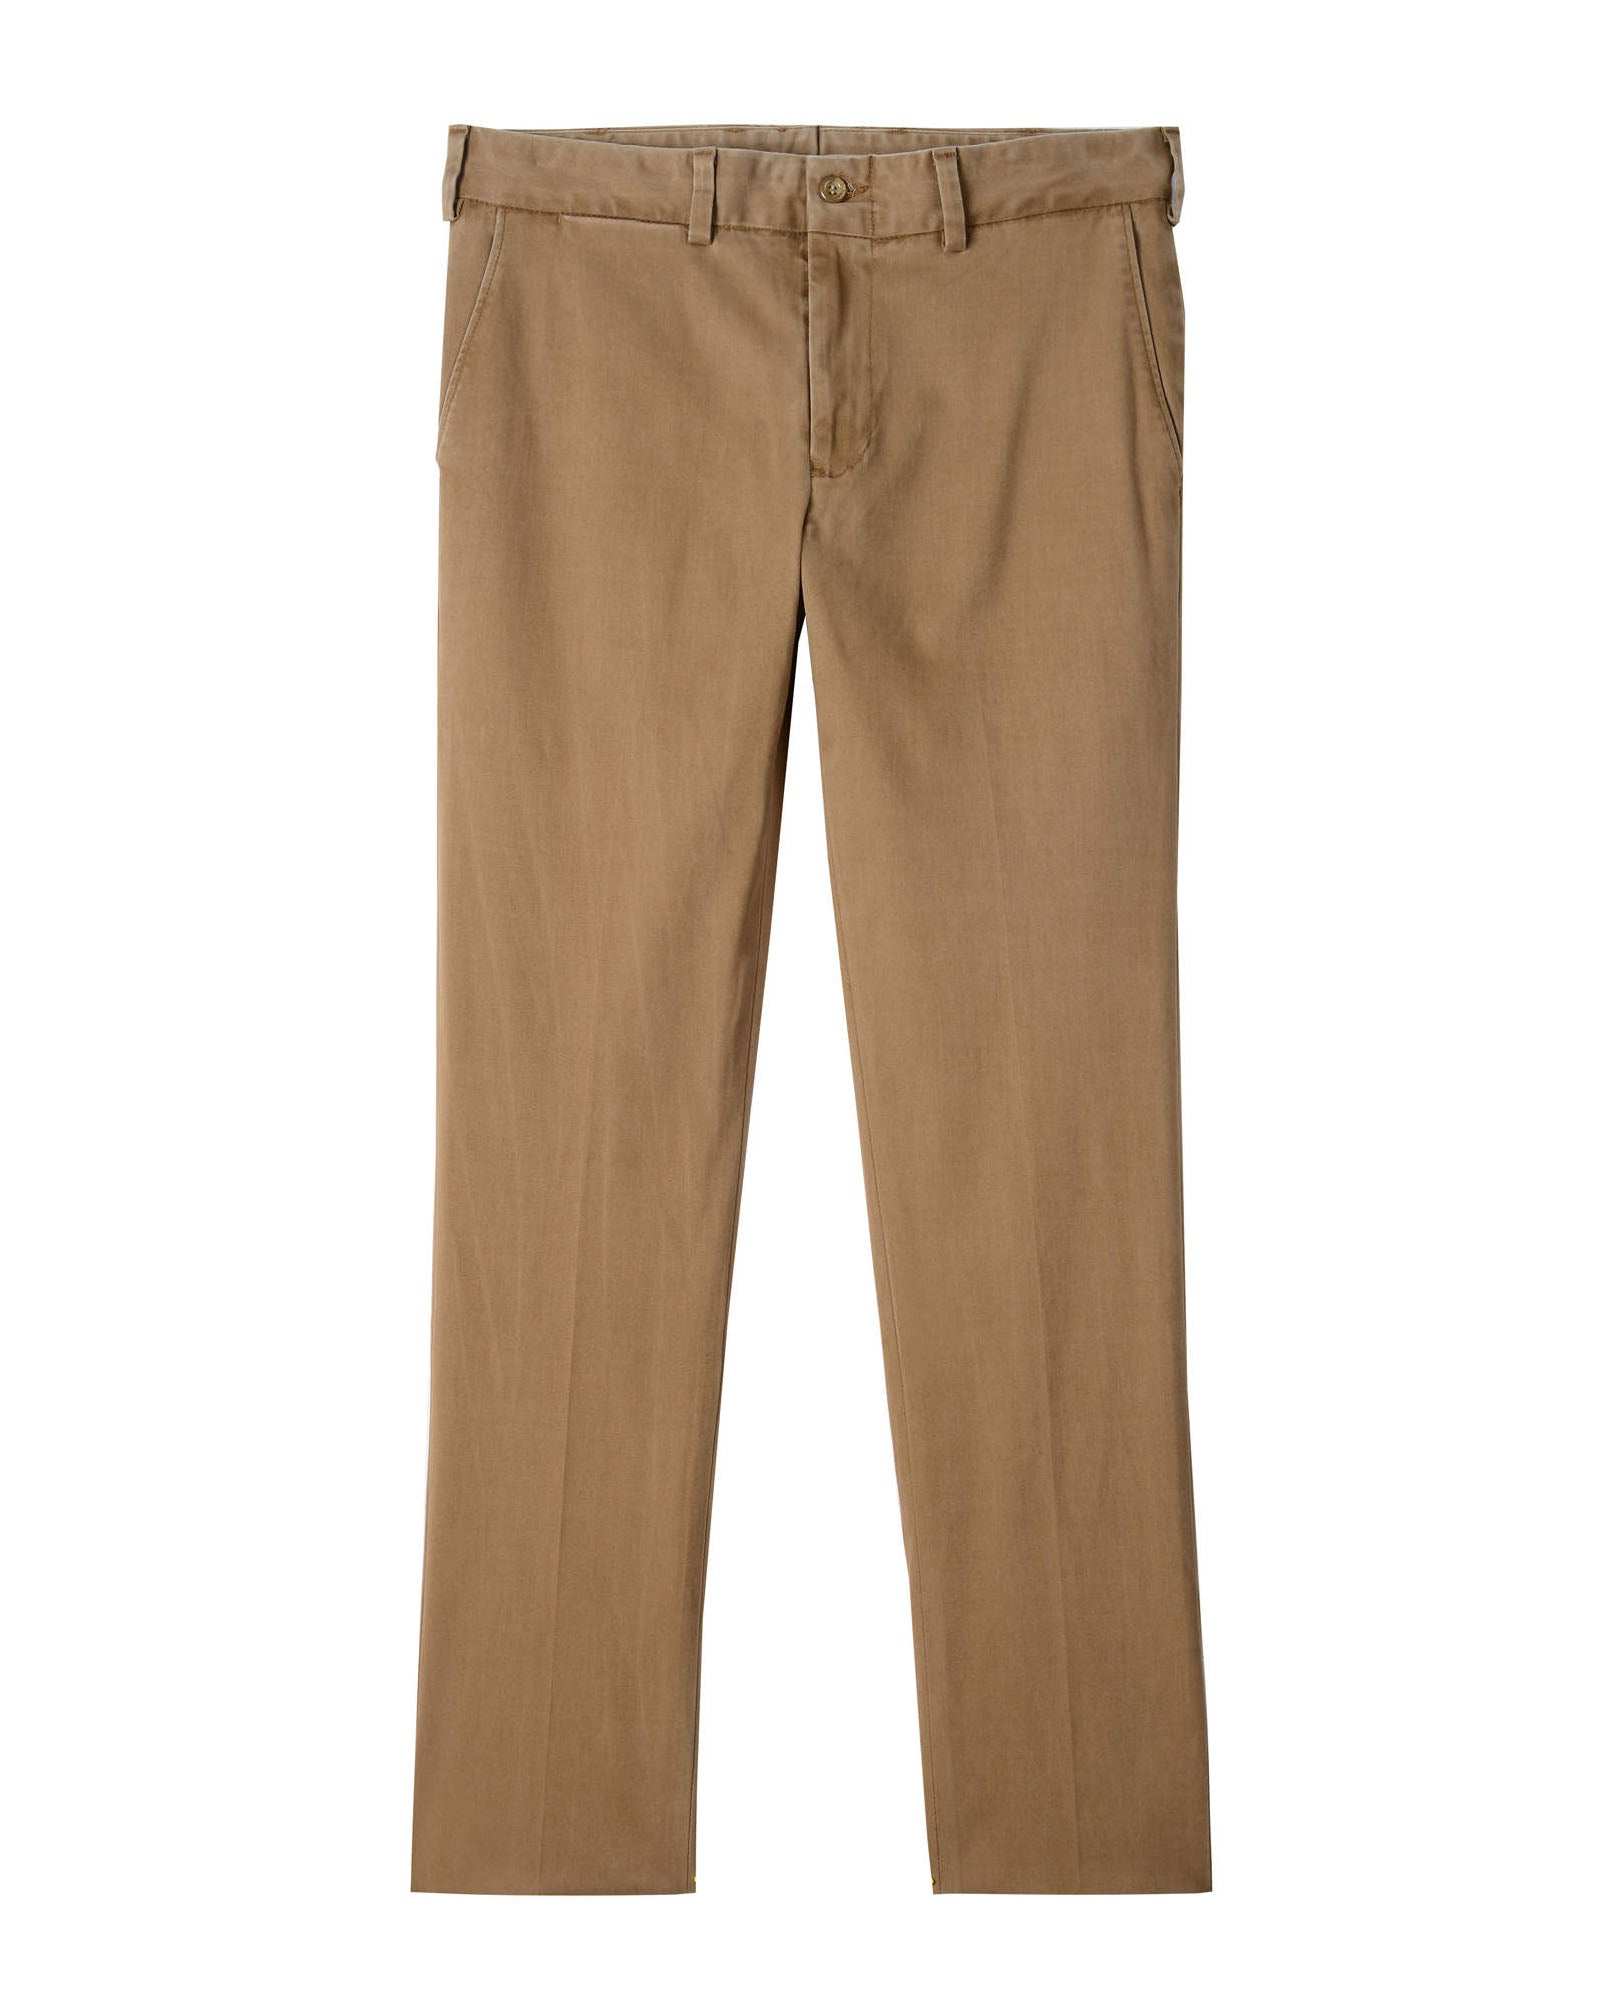 Rainwater's Washed Chino in Khaki - Rainwater's Men's Clothing and Tuxedo Rental